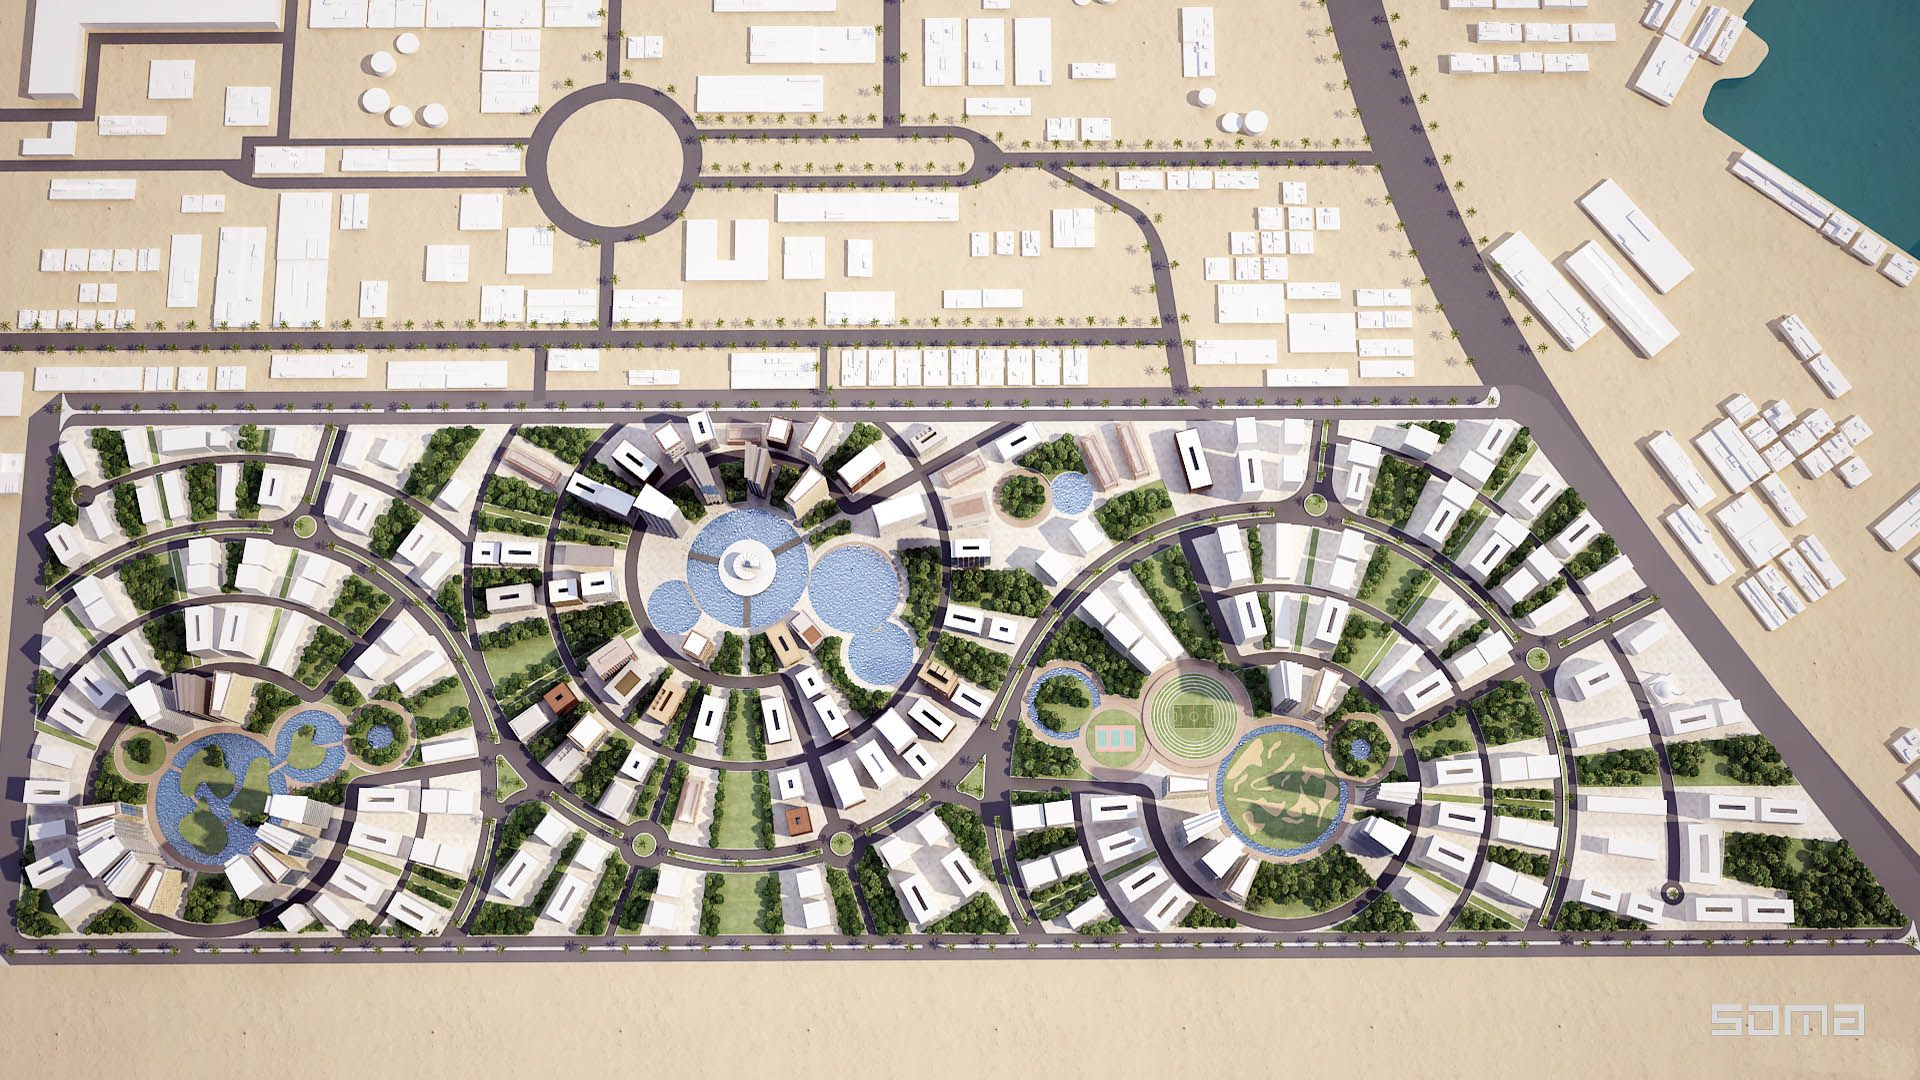 Dubai Master Plan Urban Design Google Search Urban Planning Pinterest Master Plan Urban